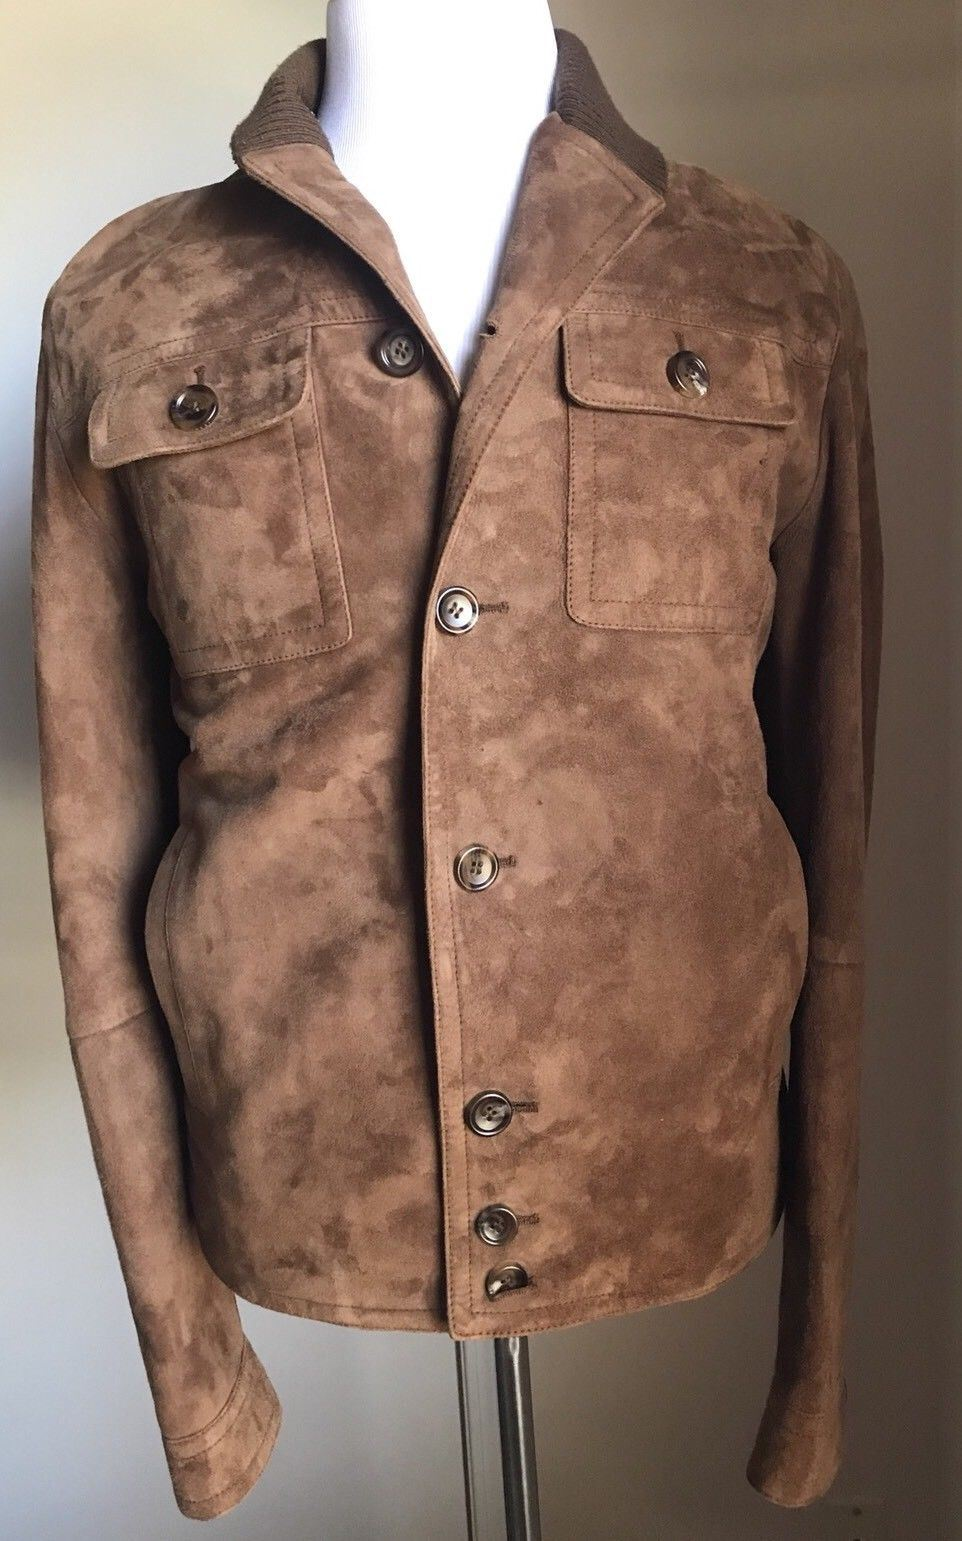 New $3950 Gucci Men's Suede Leather Brown Coat Jacket 40 US ( 50 Eu) 387684XG101 - BAYSUPERSTORE